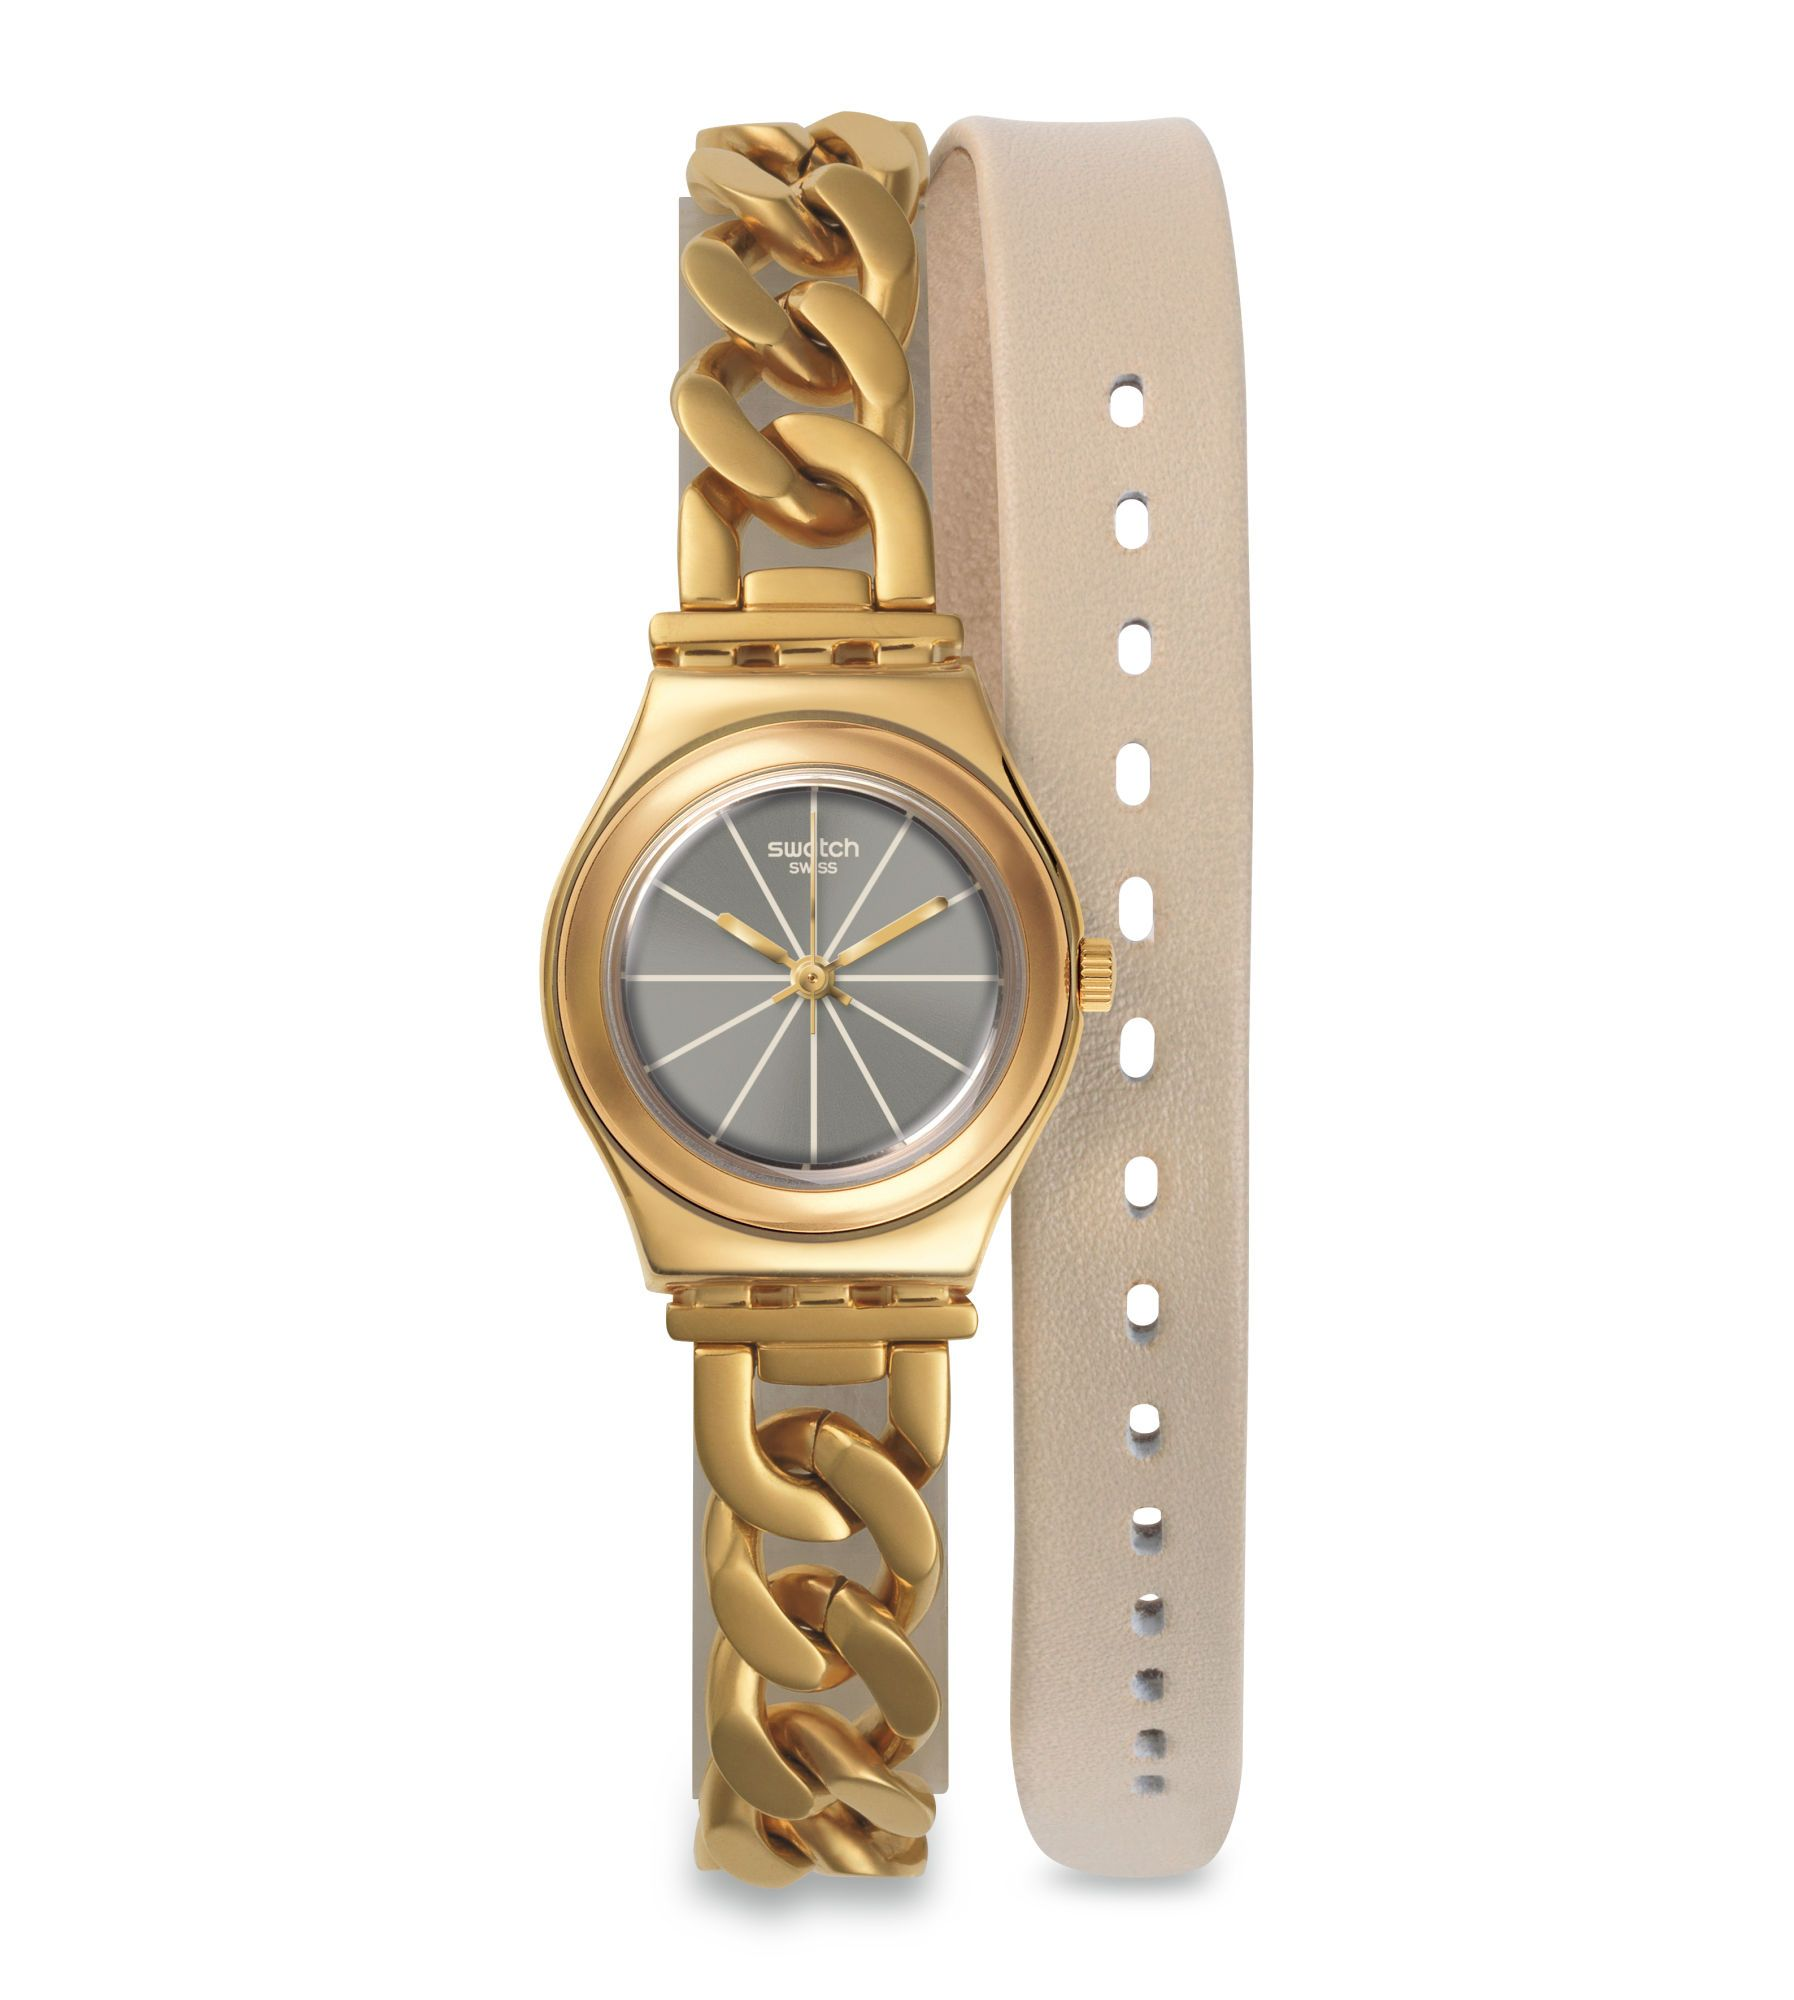 swatch watches jacobtime switch